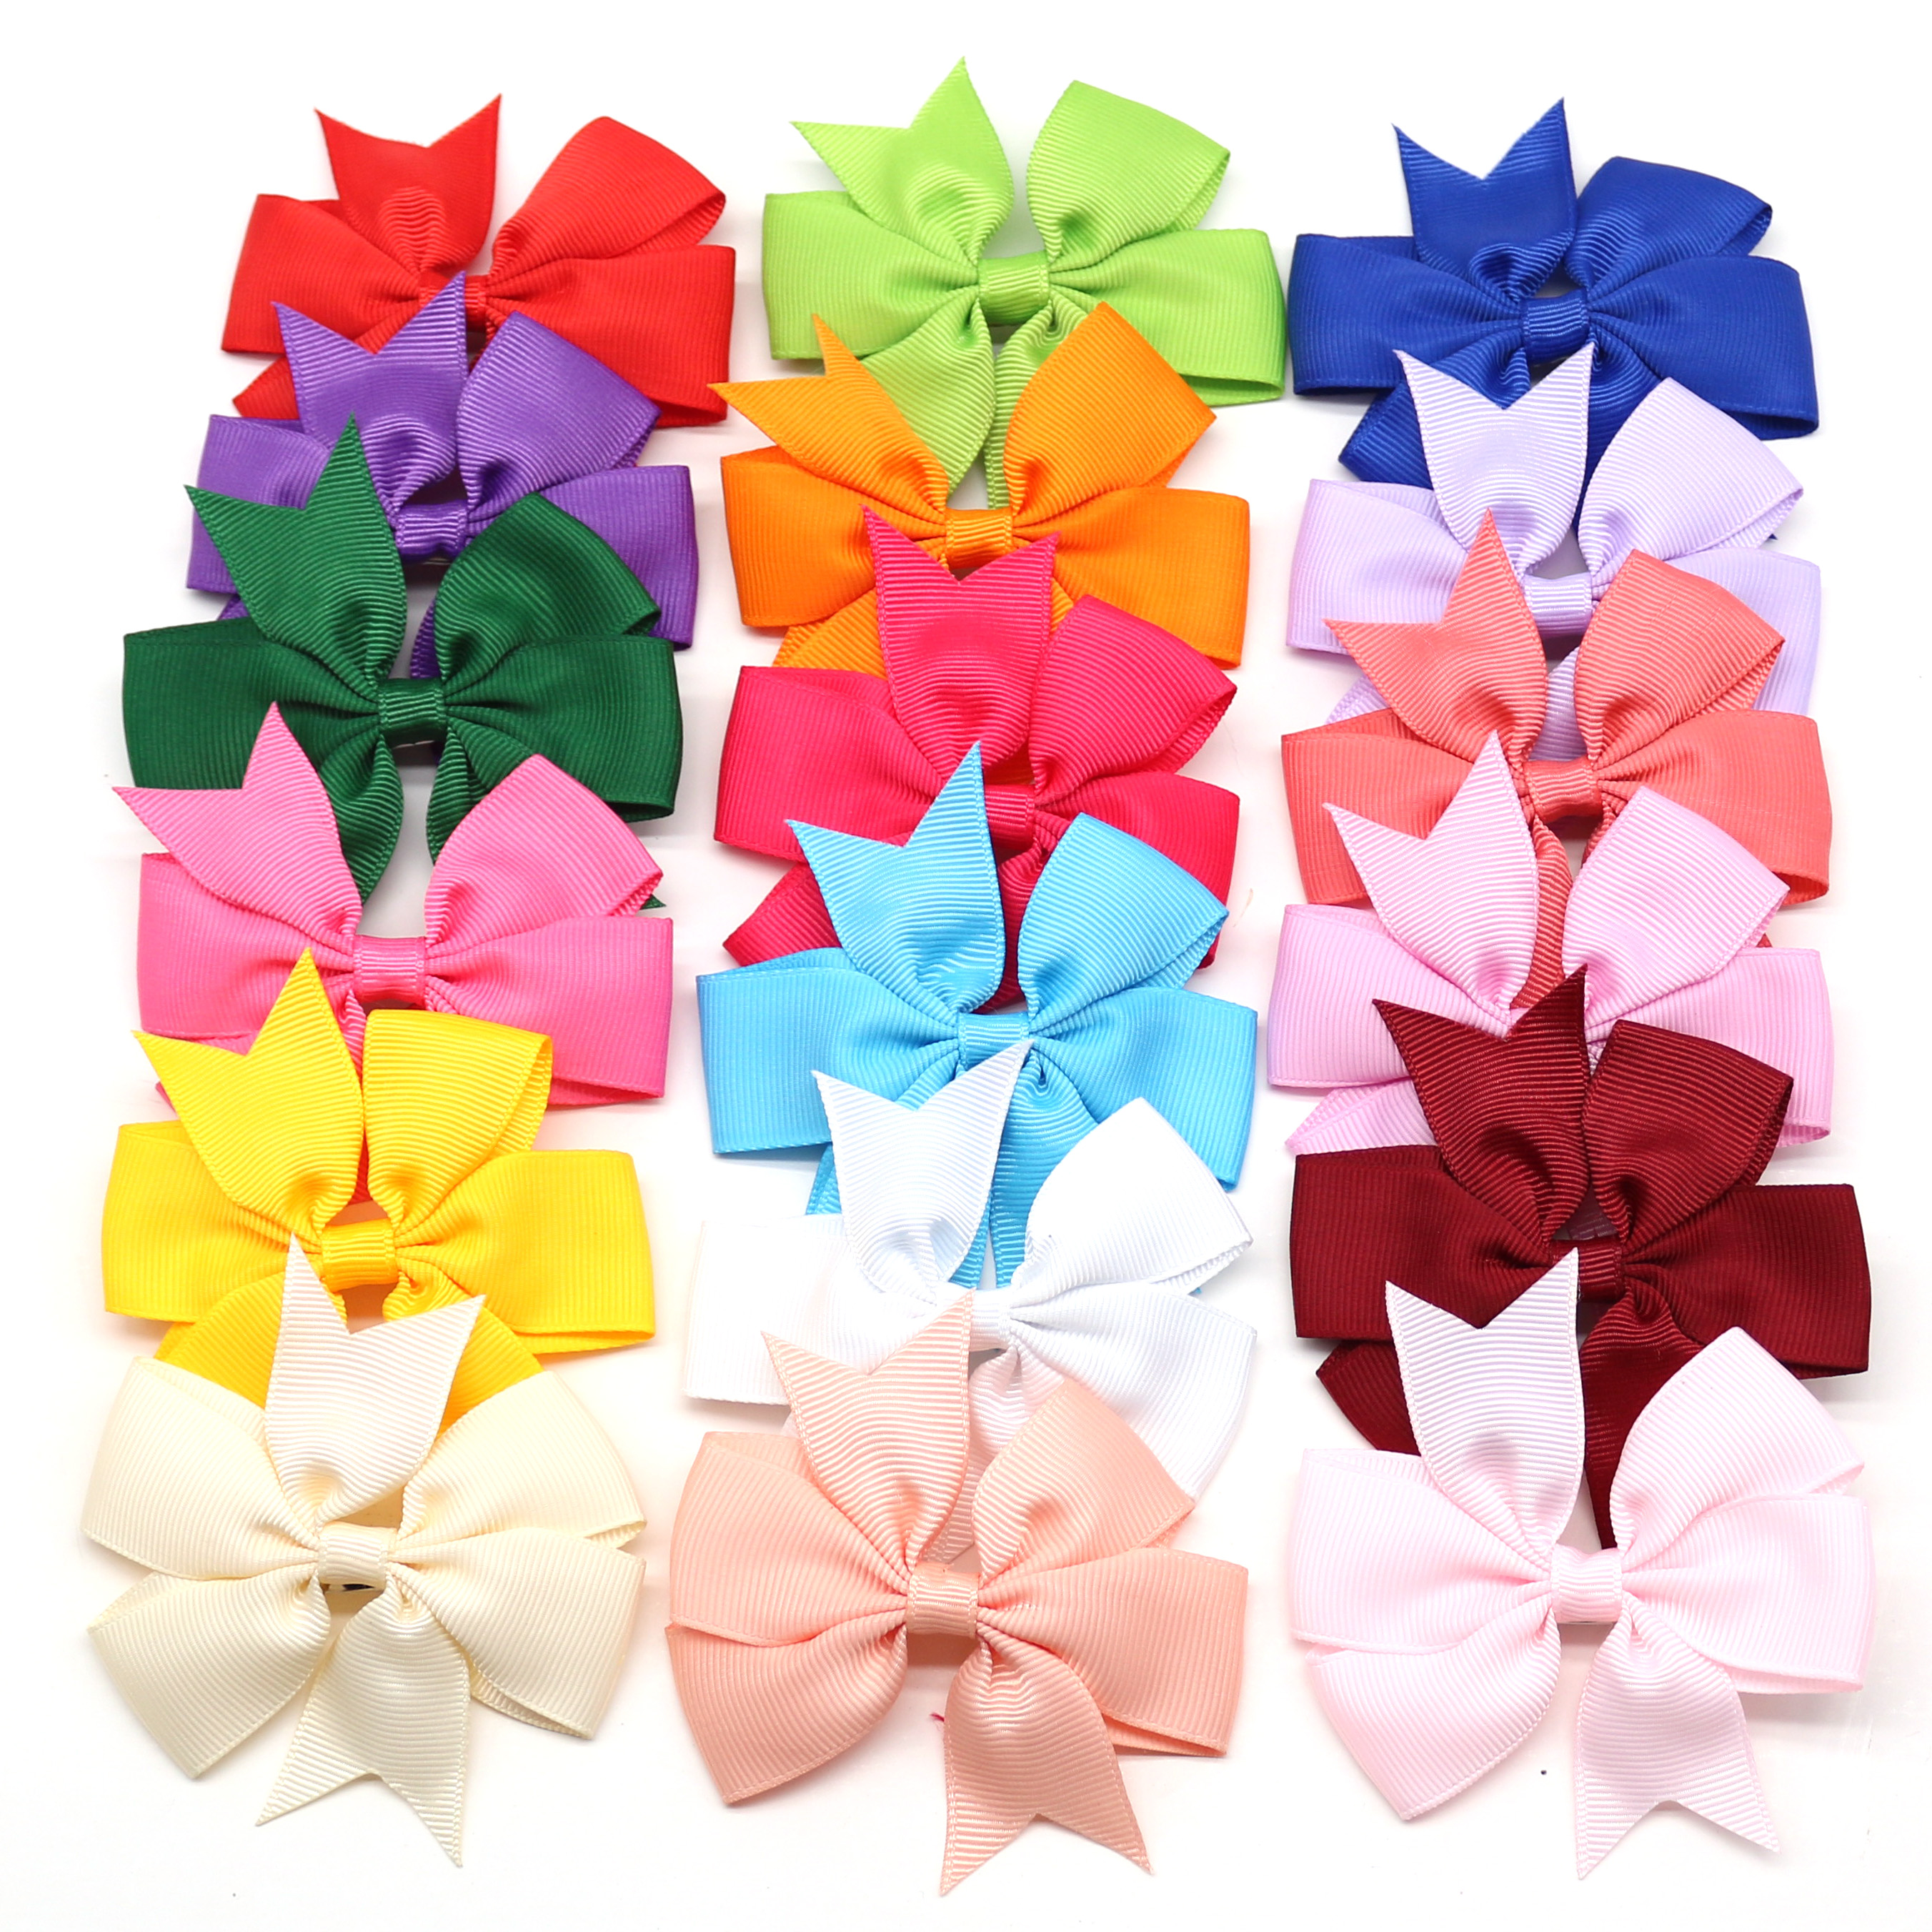 10pcs Large Dog Bows Alloy Clip Dot Designs Big Dog Hair Bows For Holidays Pet Dog Hair Accessories Pet Grooming Products